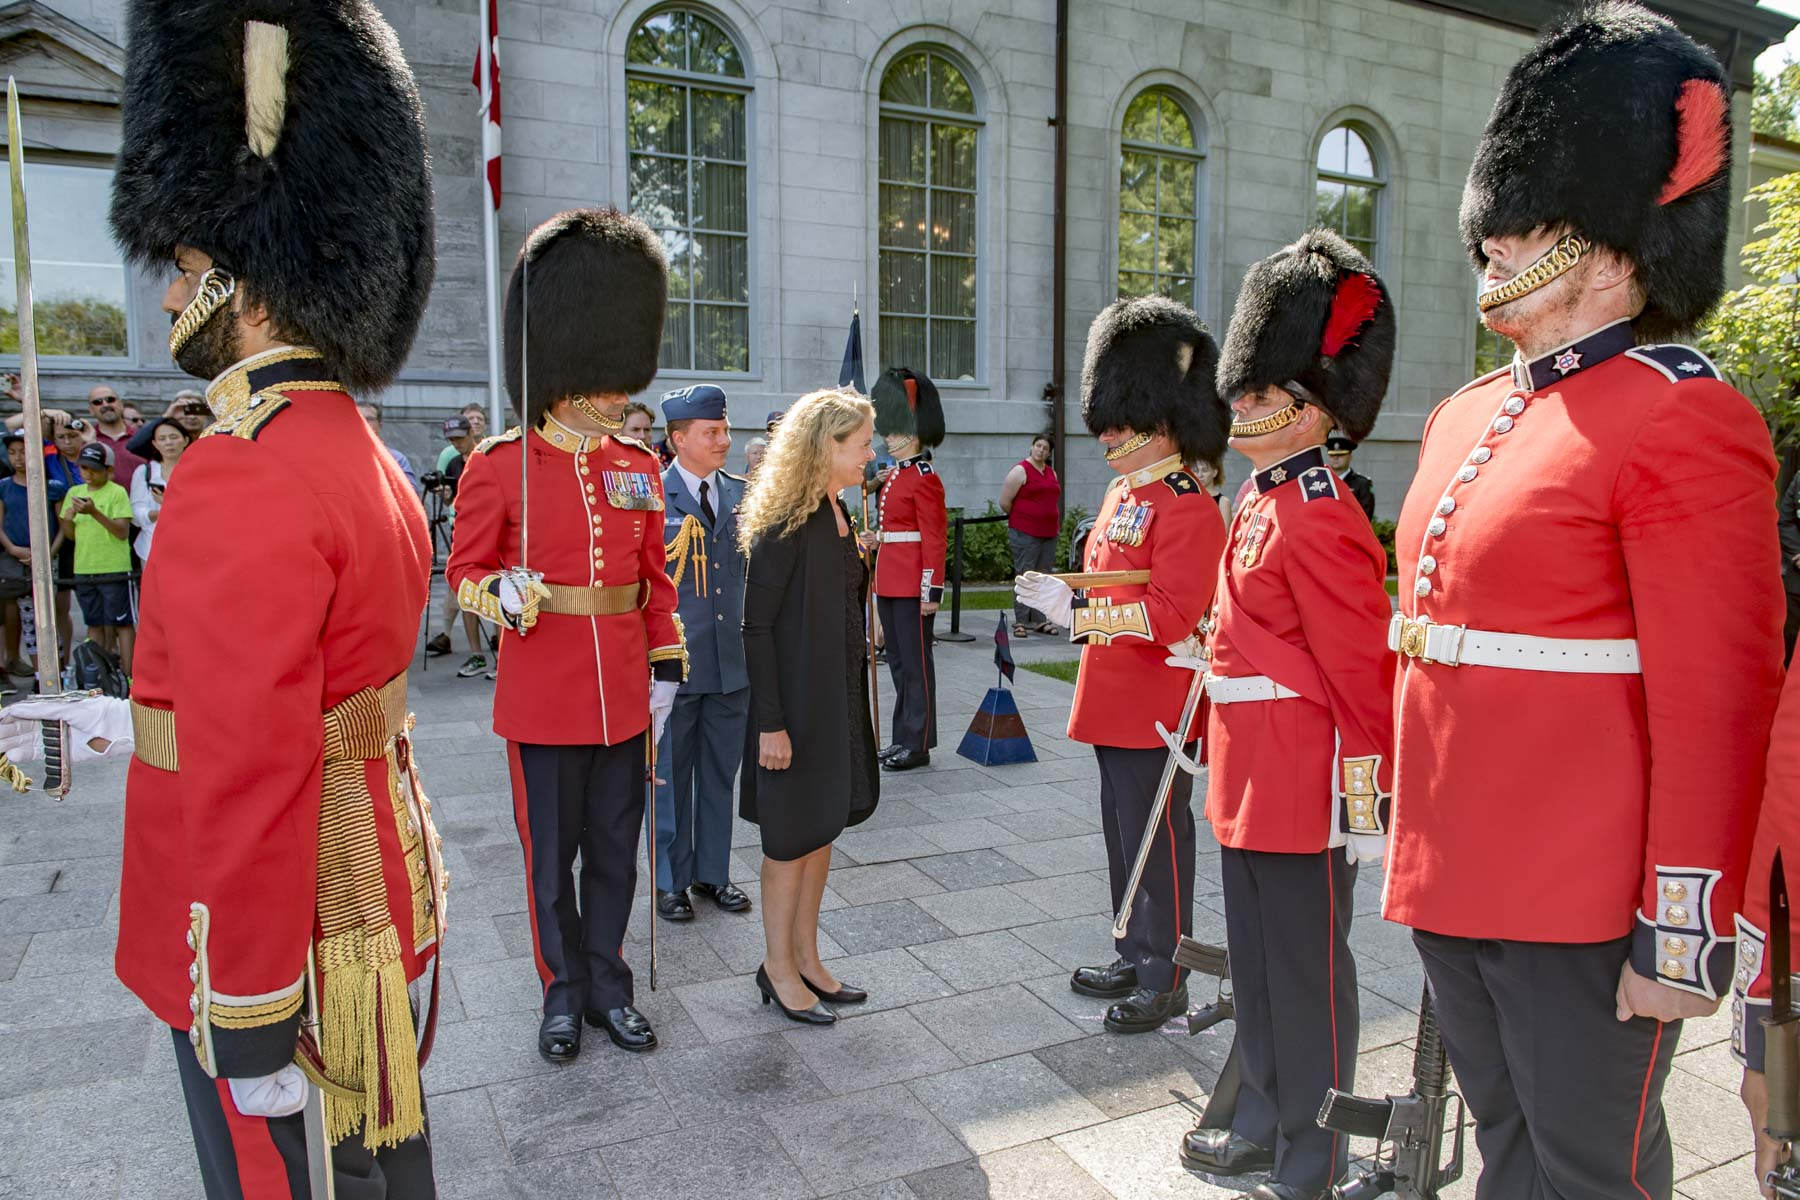 The Governor General then proceeded to inspect the Ceremonial Guard.